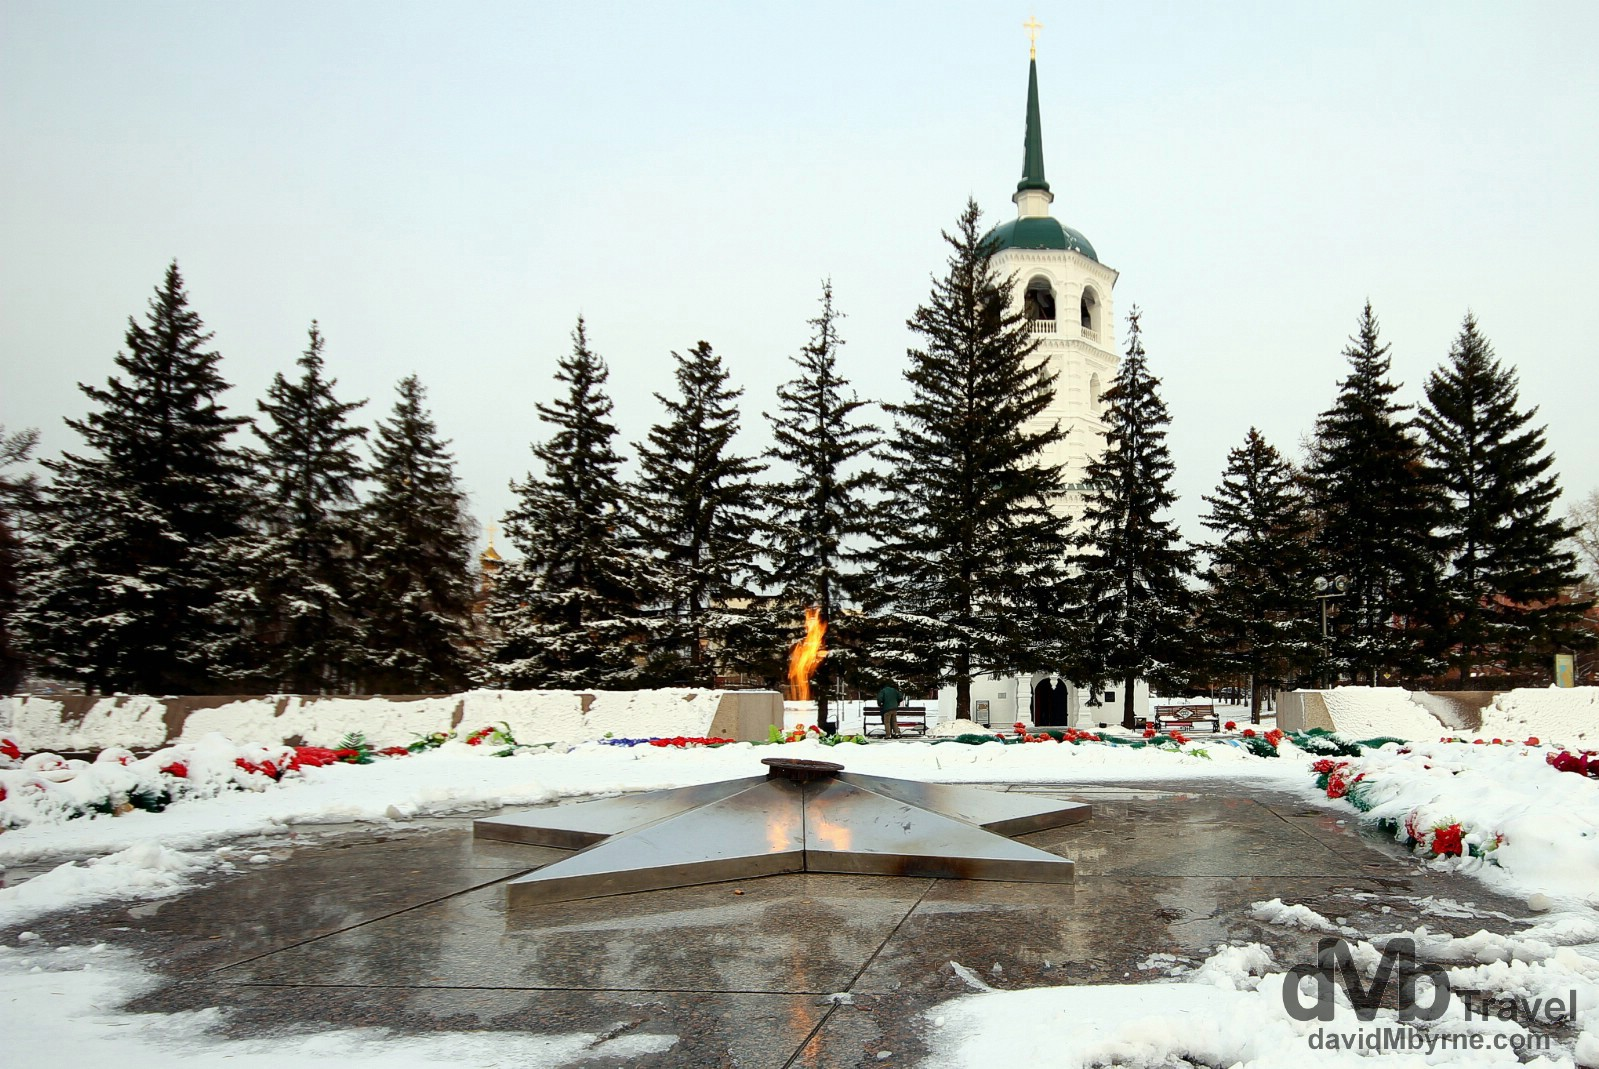 The eternal flame of the memorial complex dedicated to the memory of the Siberian soldiers who fell in battle against the Nazis in World War II. Irkutsk, Russia. November 6th 2012.